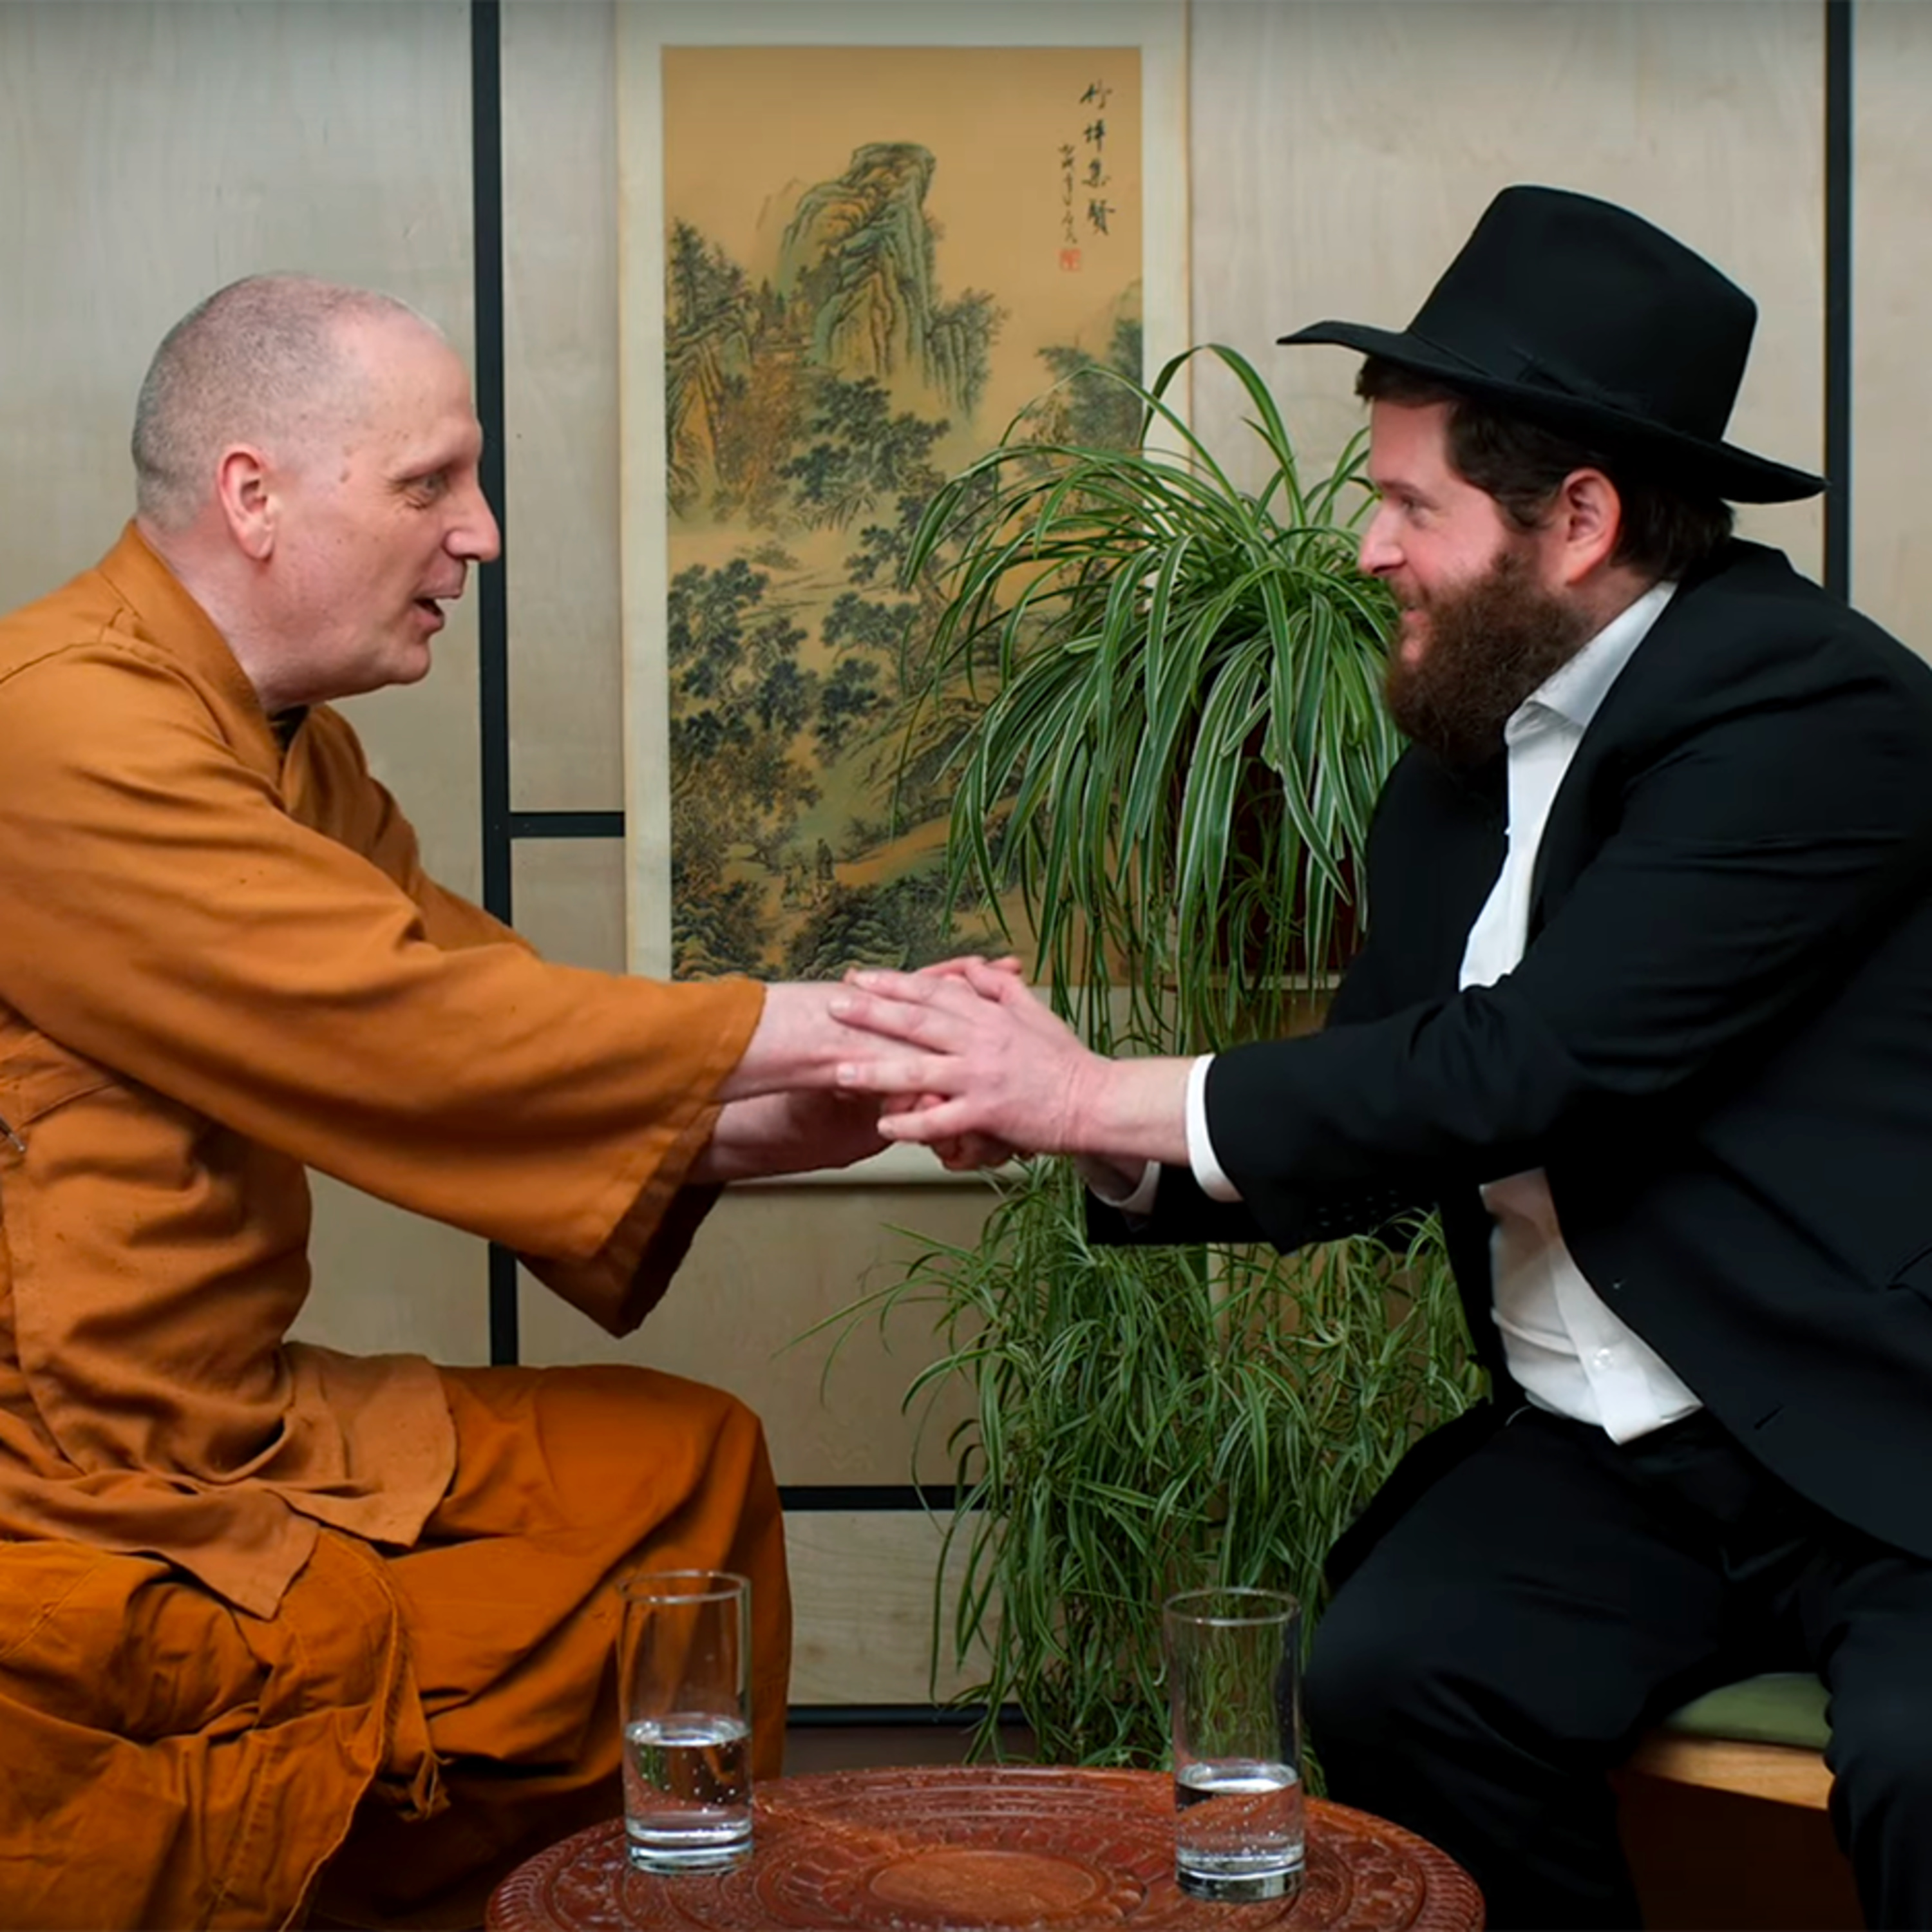 The Rabbi and the Buddhist Monk